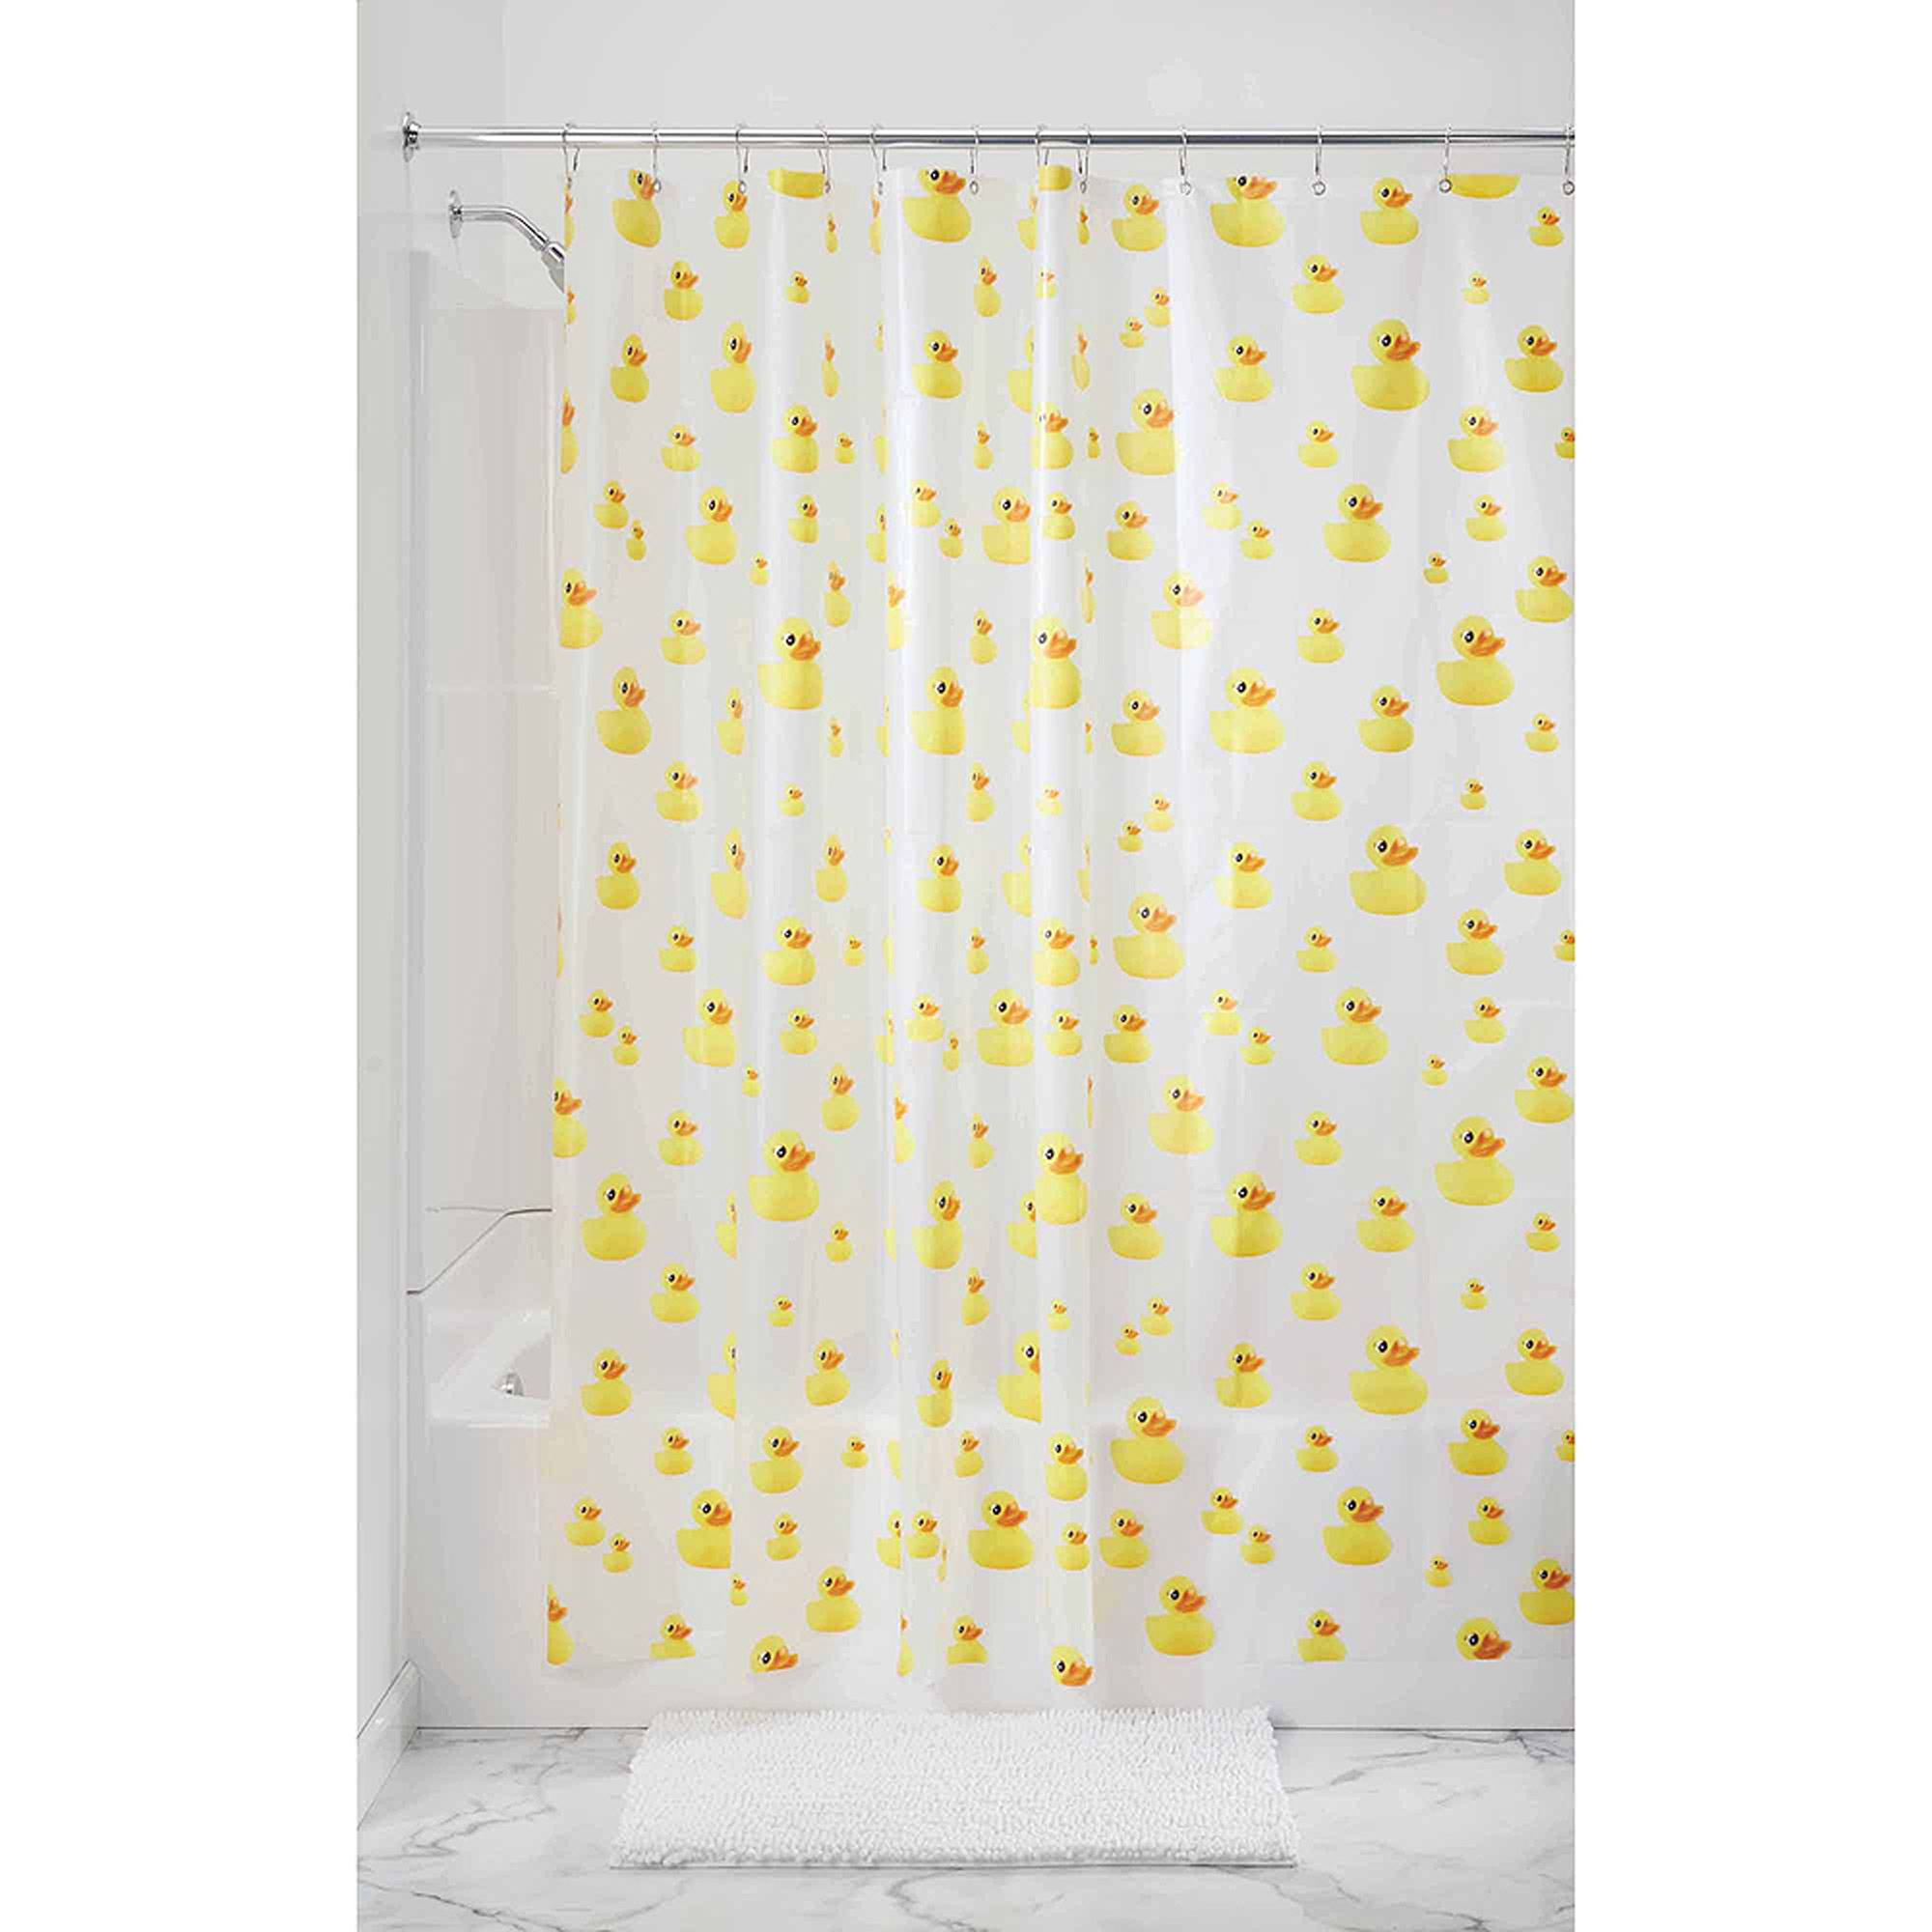 "InterDesign Ducks Frosted PEVA Shower Curtain, 72"" x 72"""